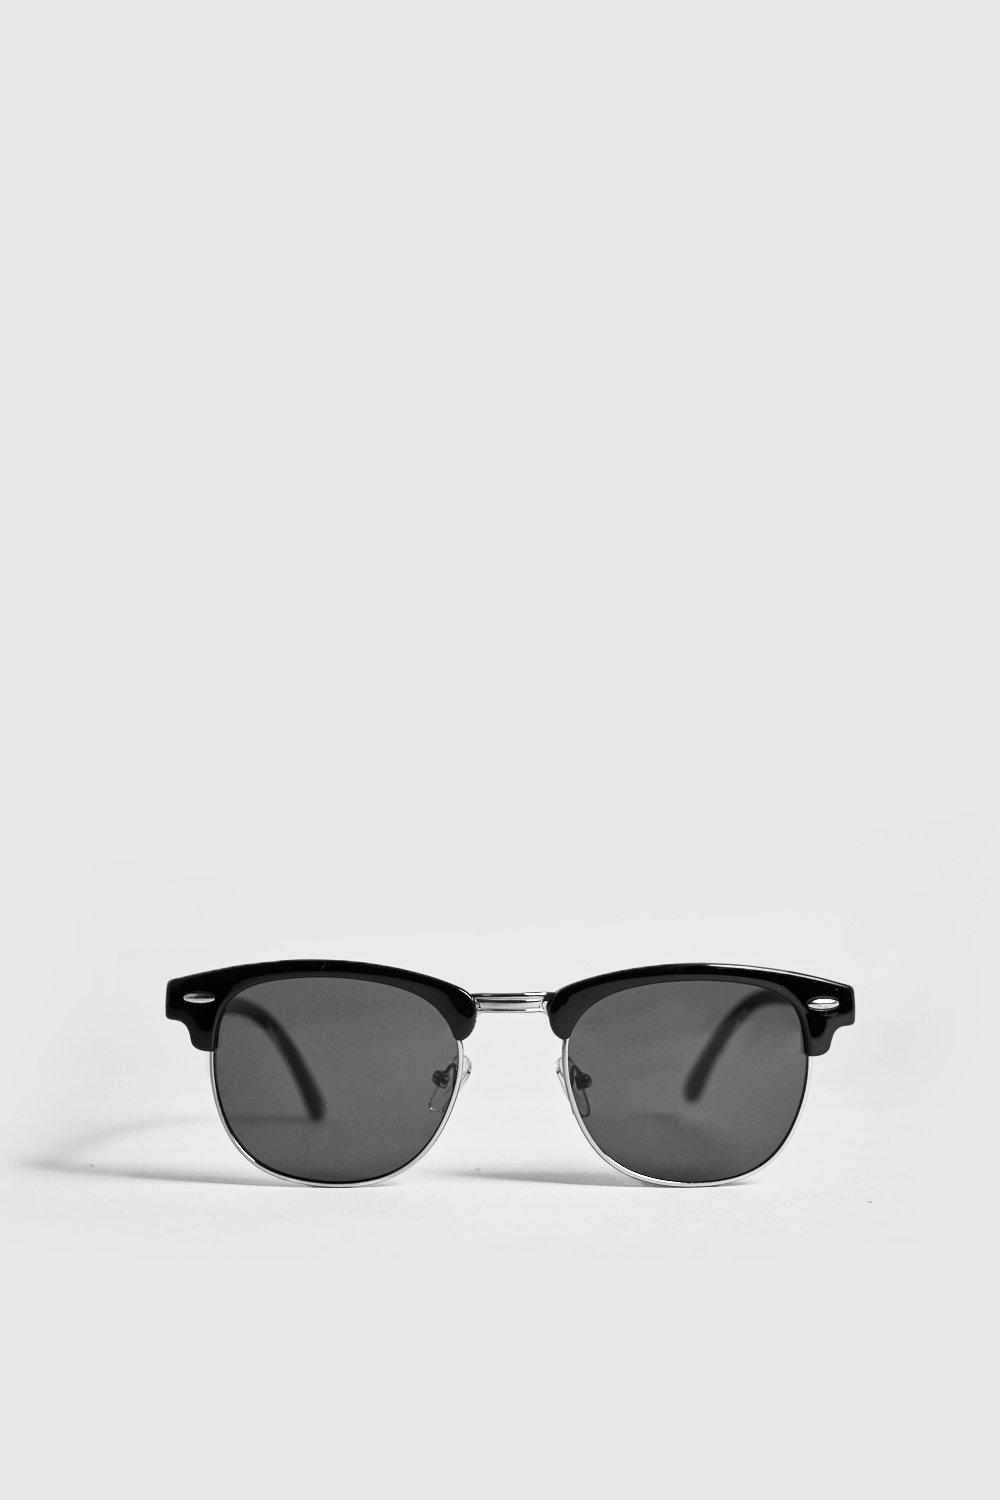 Retro Silver Frame Sunglasses